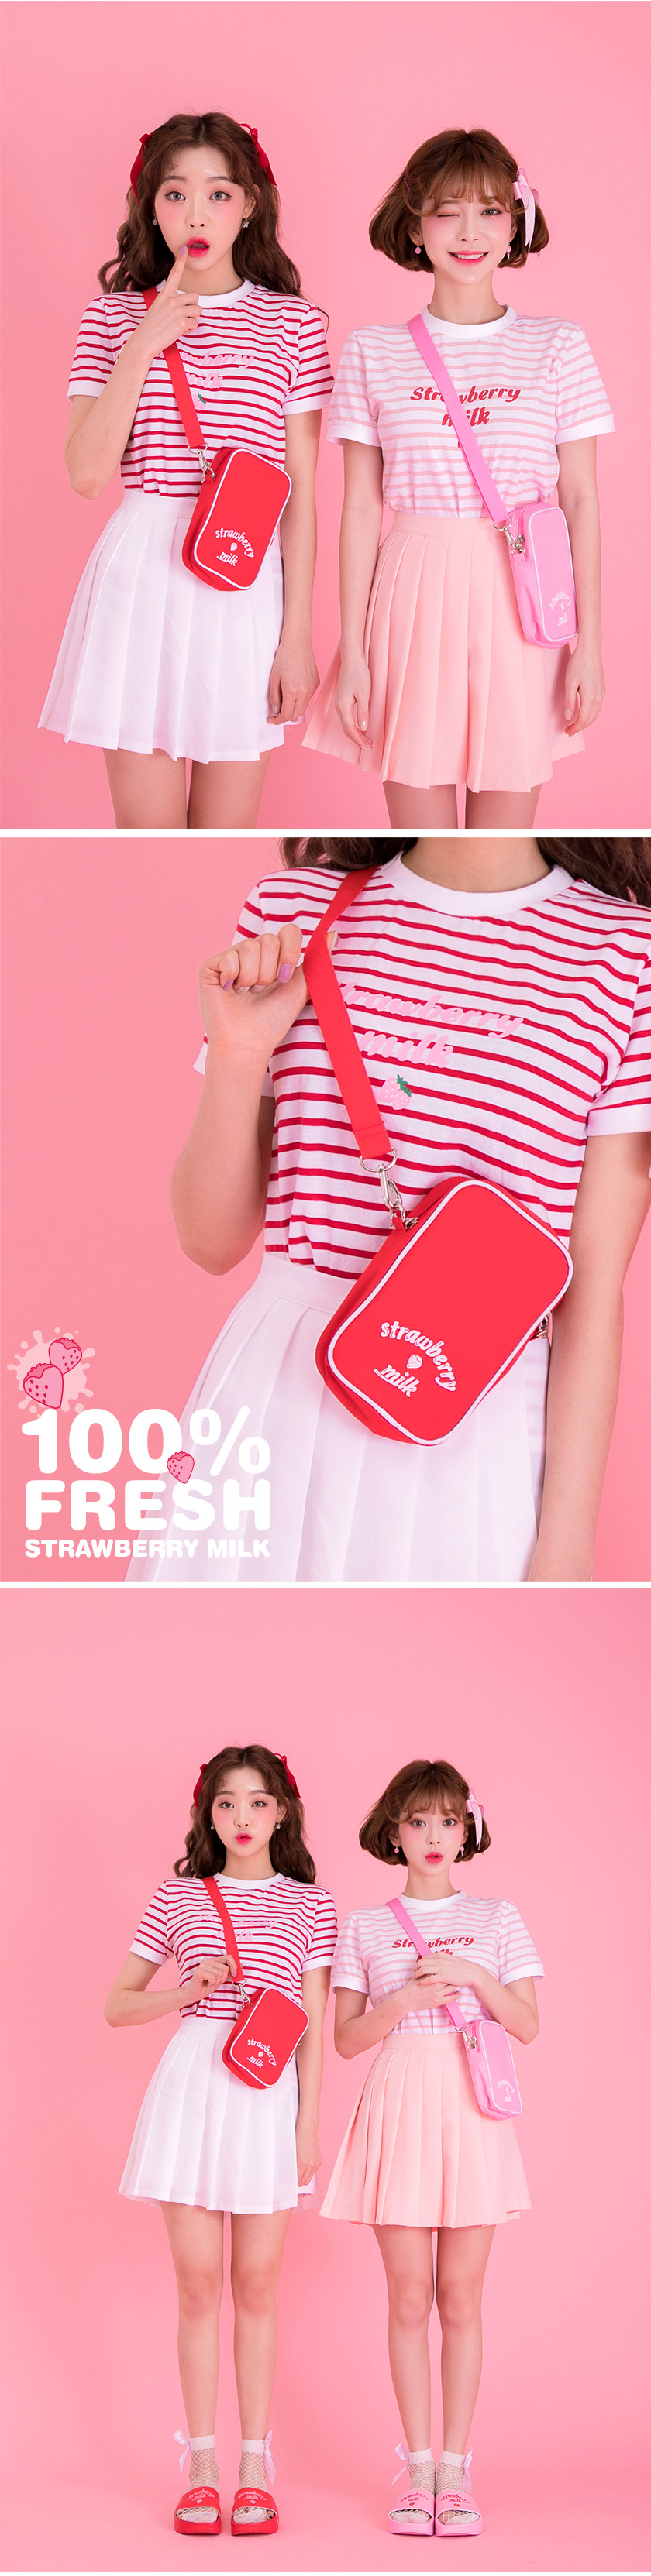 //cdn.nhanh.vn/cdn/store/29770/psCT/20180730/8419701/Strawberry_Milk_Strawberry_Craving_Tee_(0313_b01_(10)).jpg